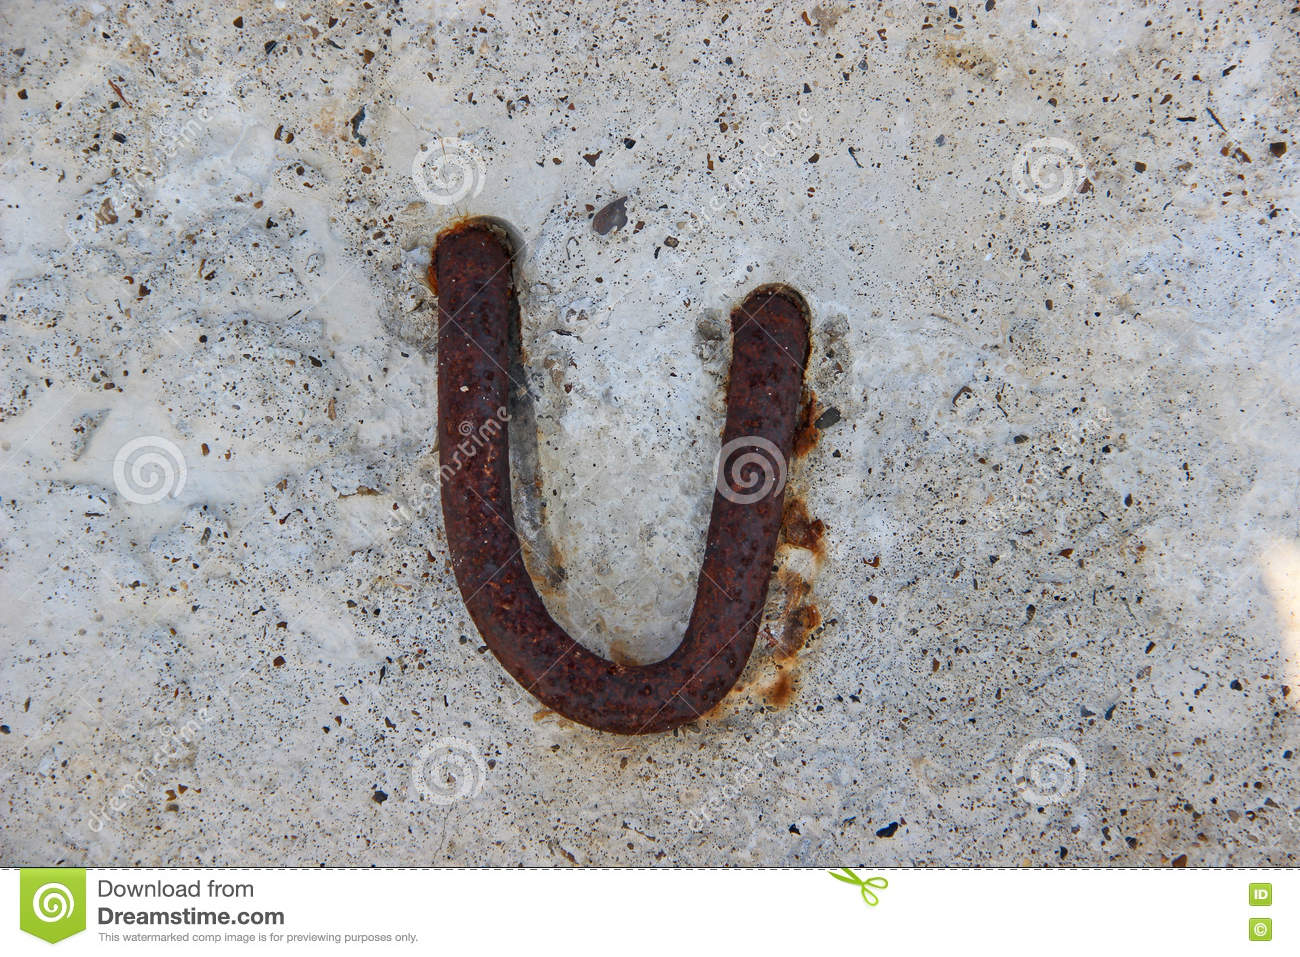 A Corroded Lifting Lug In A Reinforced Concrete Slab Stock Photo ...